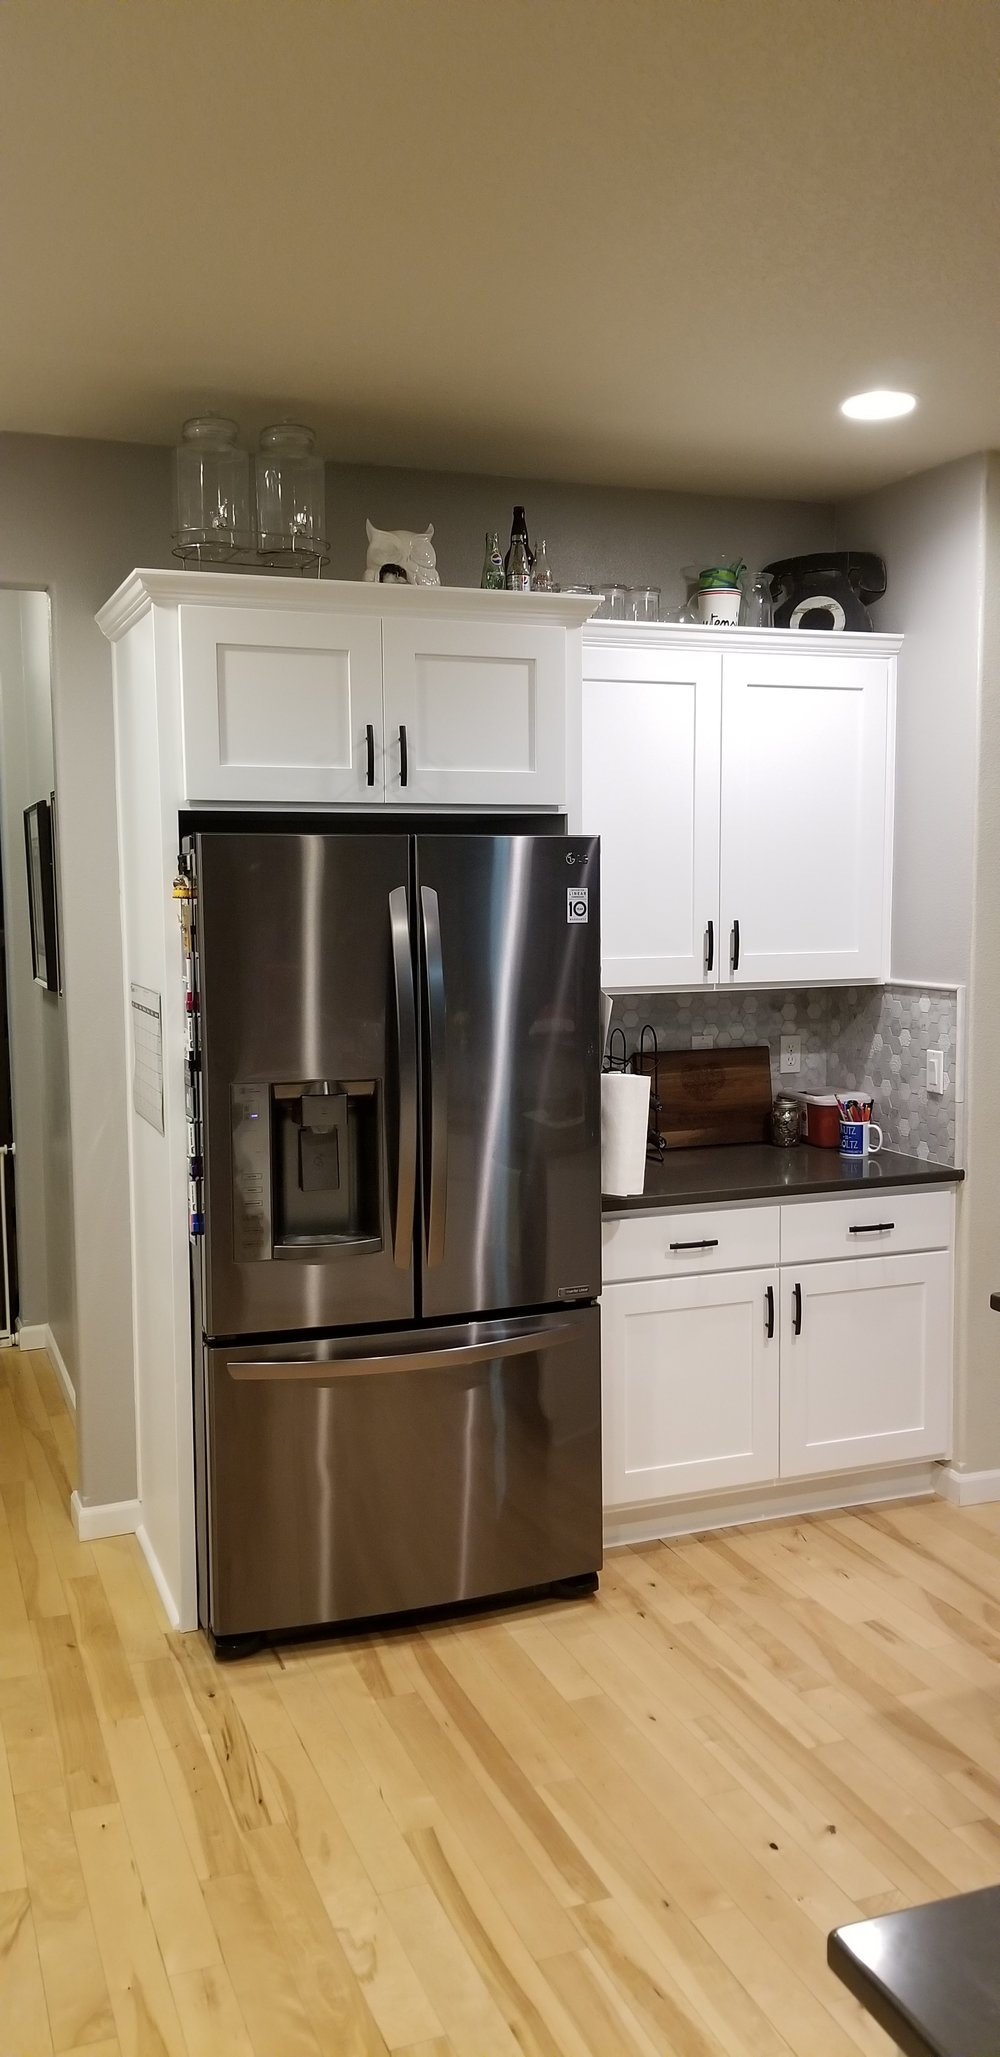 "Updated kitchen using the same existing cabinets, painted with new doors and hardware. ""Now I just open the cabinet to see the soft-close"""